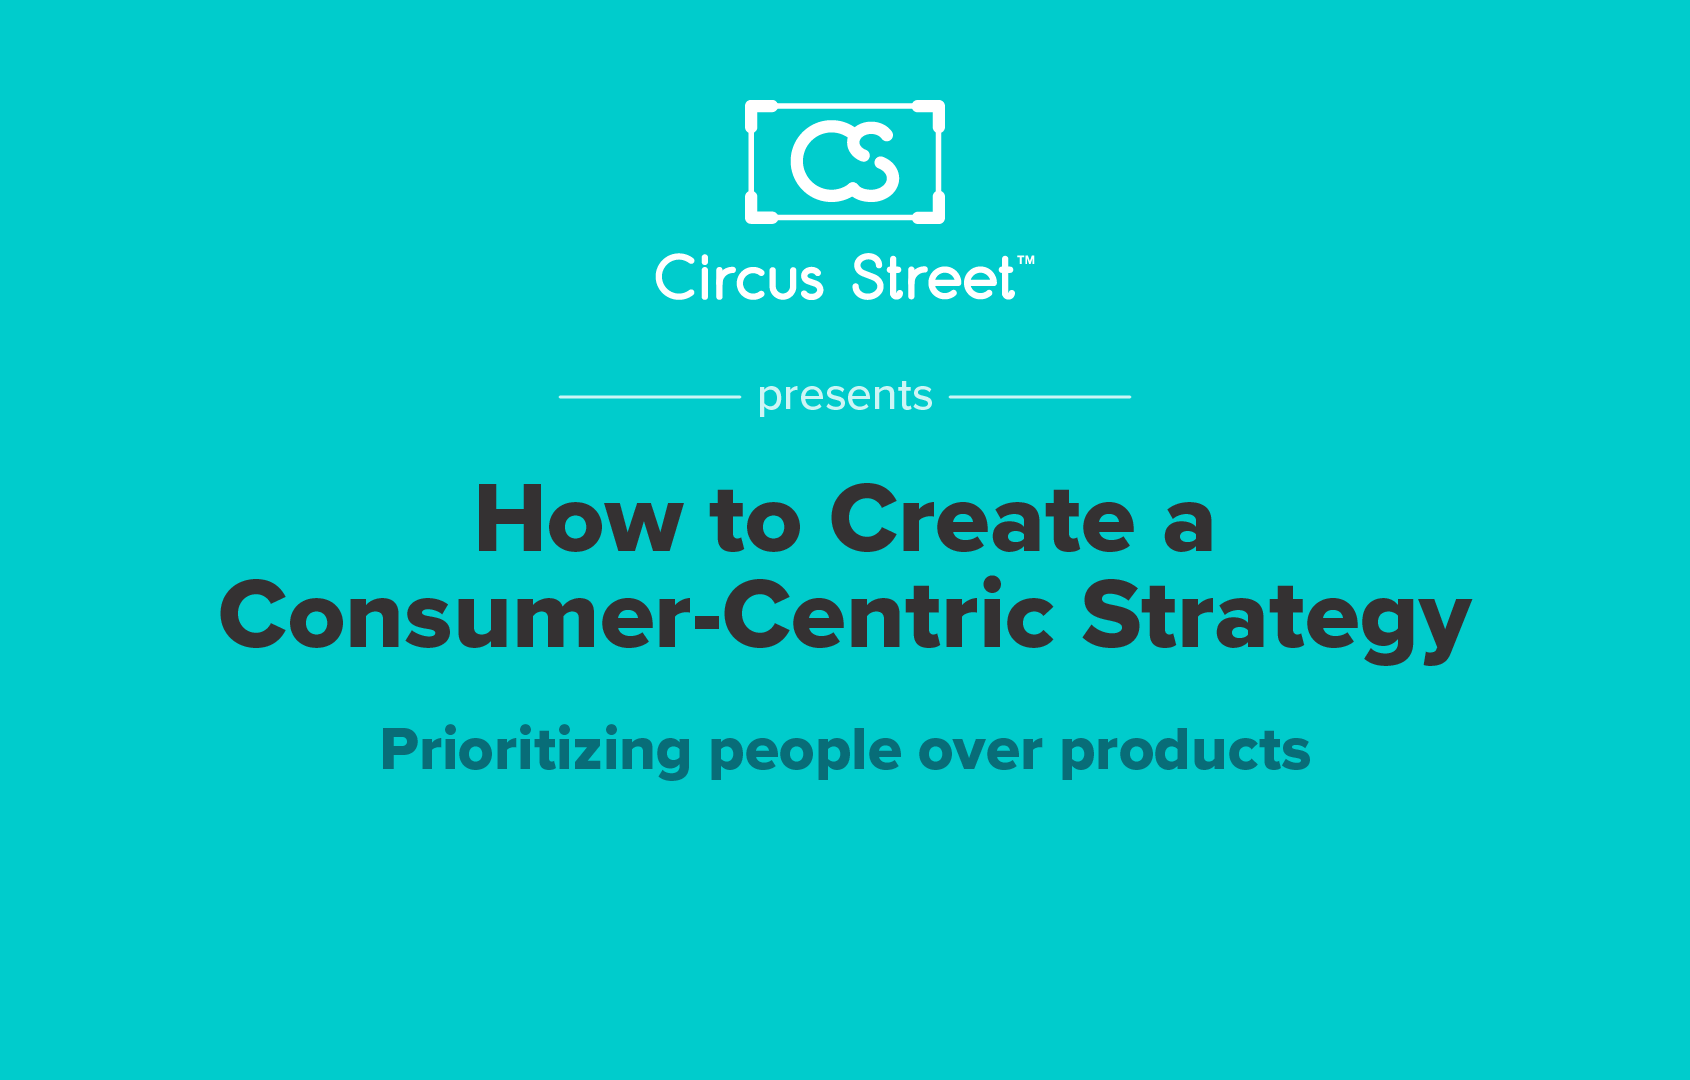 How to Create a Consumer-Centric Strategy